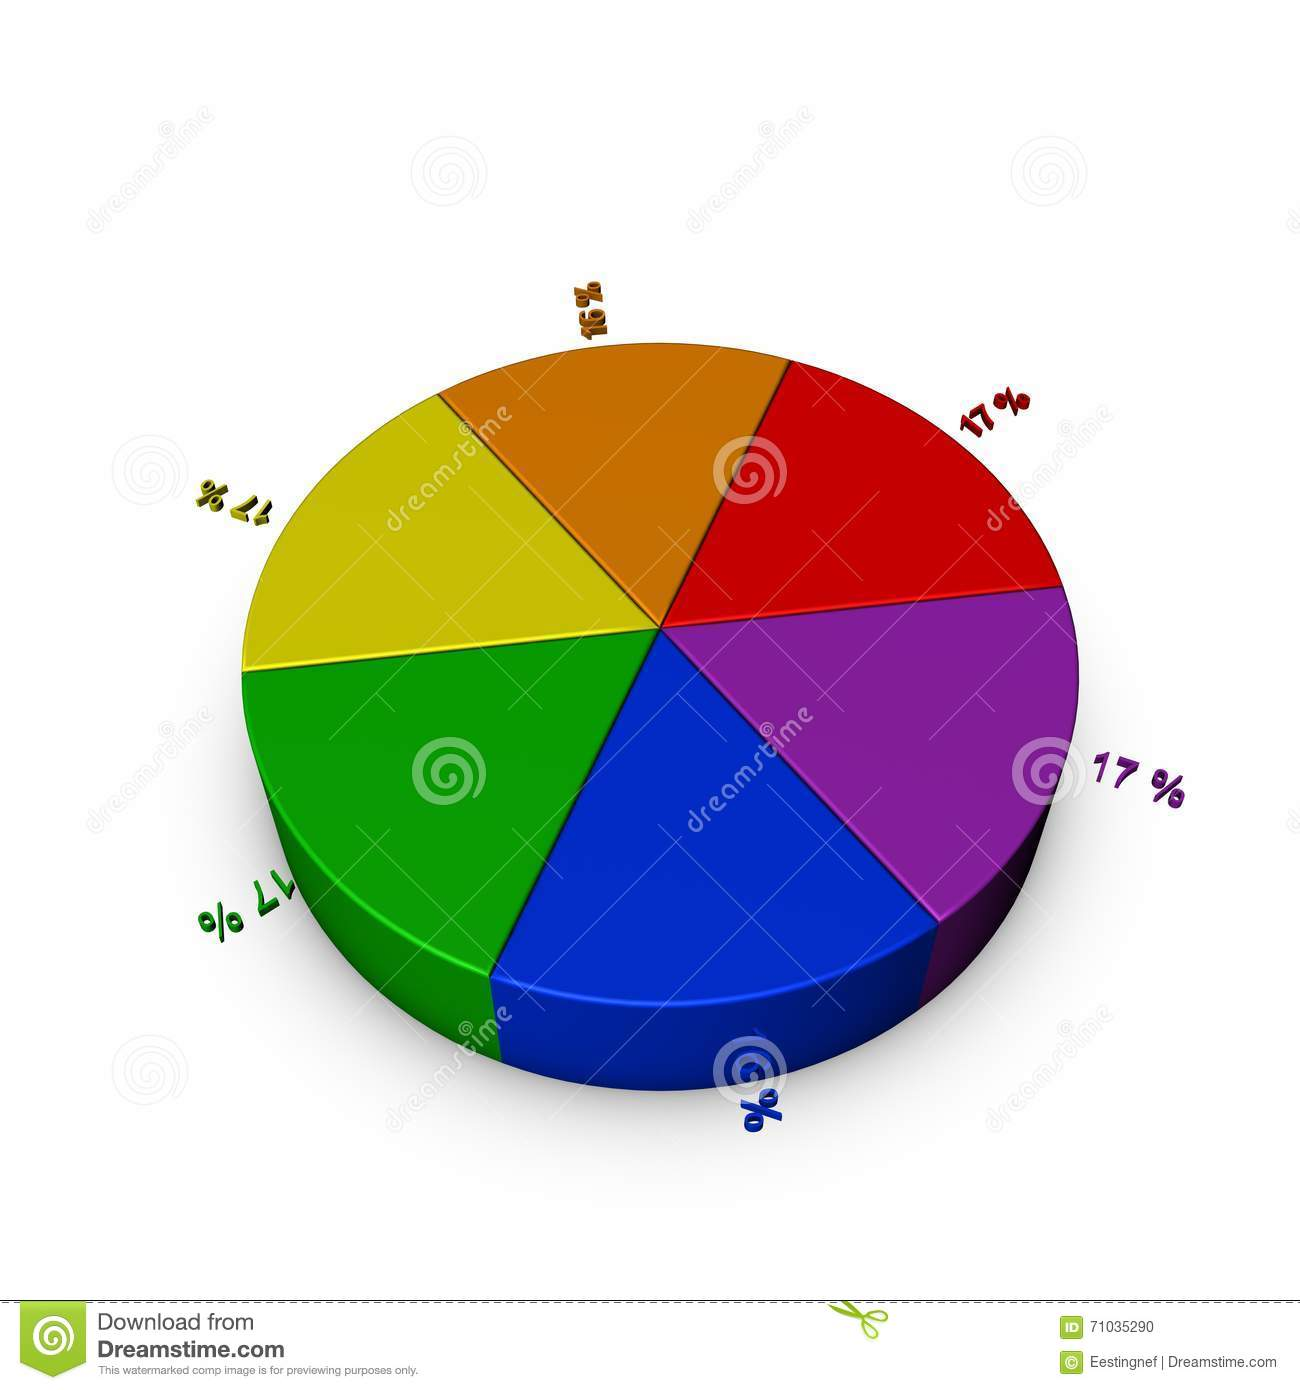 Pie Chart Template Colorful 3d Rendering Illustration Stock